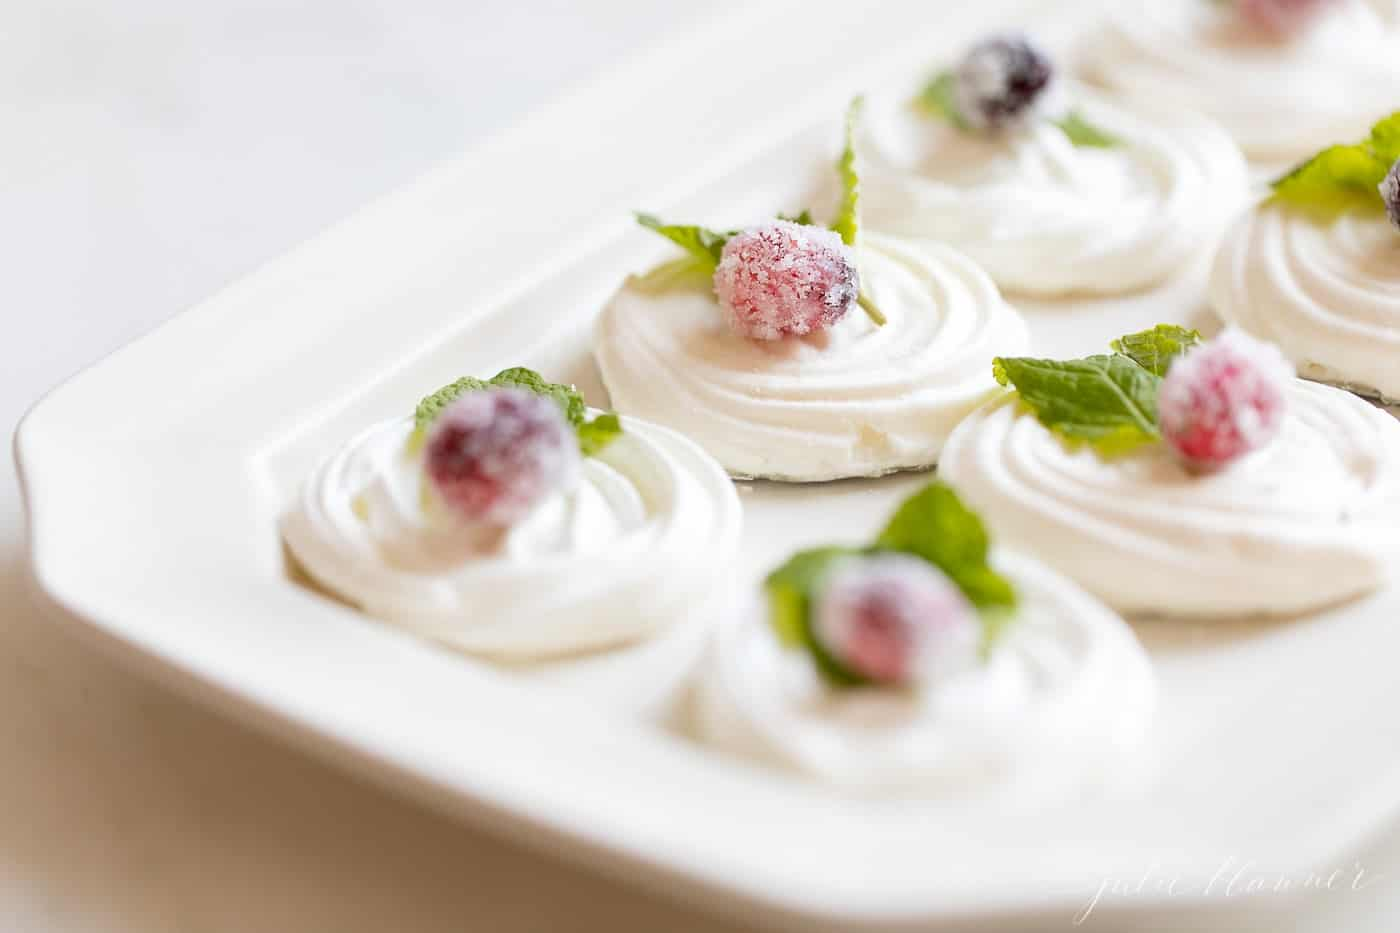 meringues decorated with sugared cranberries and mint leaves on a platter